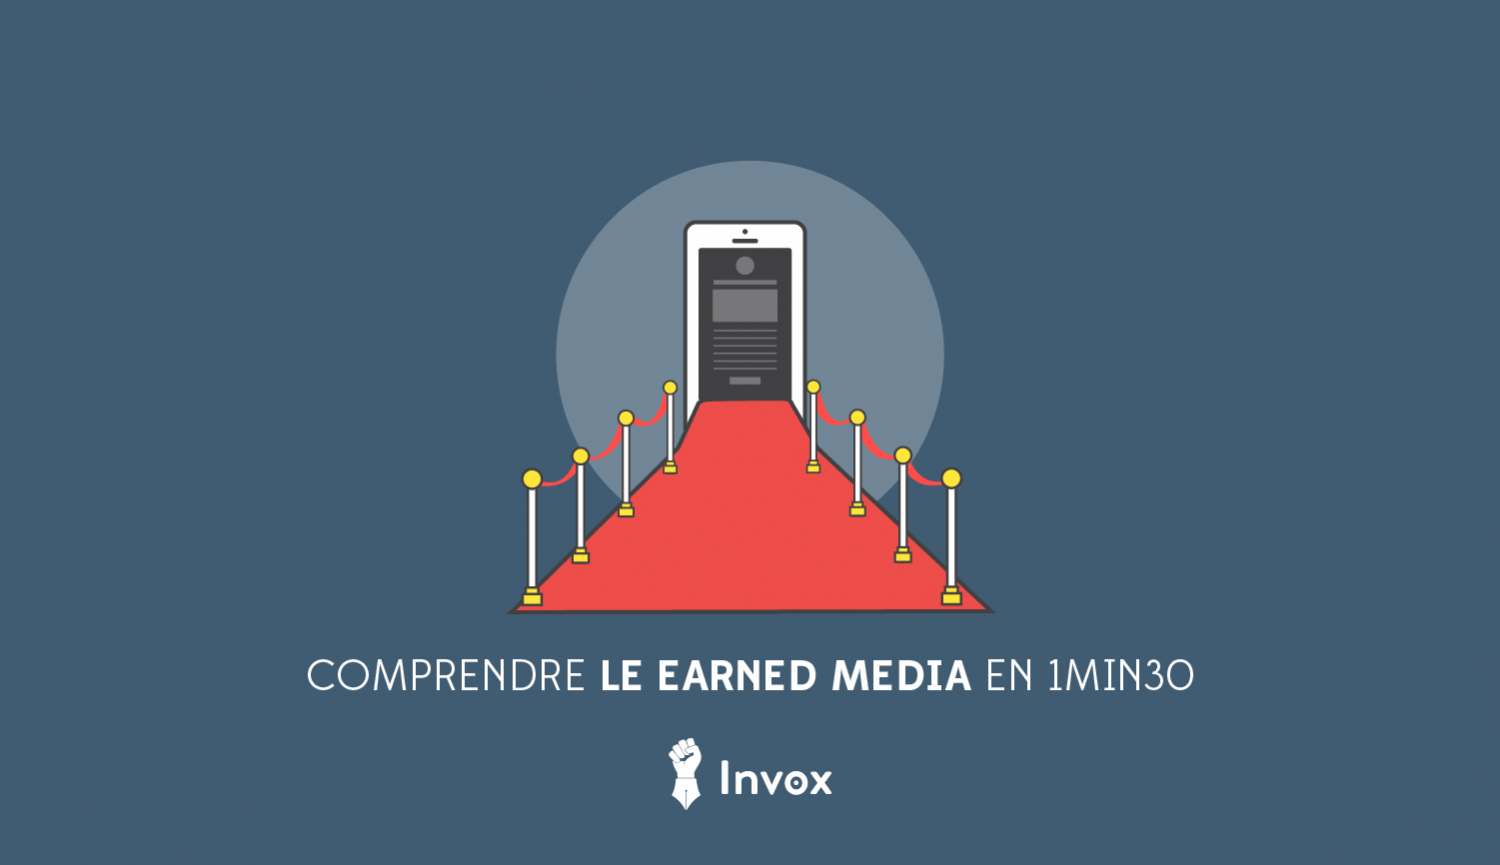 #EarnedMedia #Invox #Blog #Invox #InvoxWeTrust #ContentMarketing